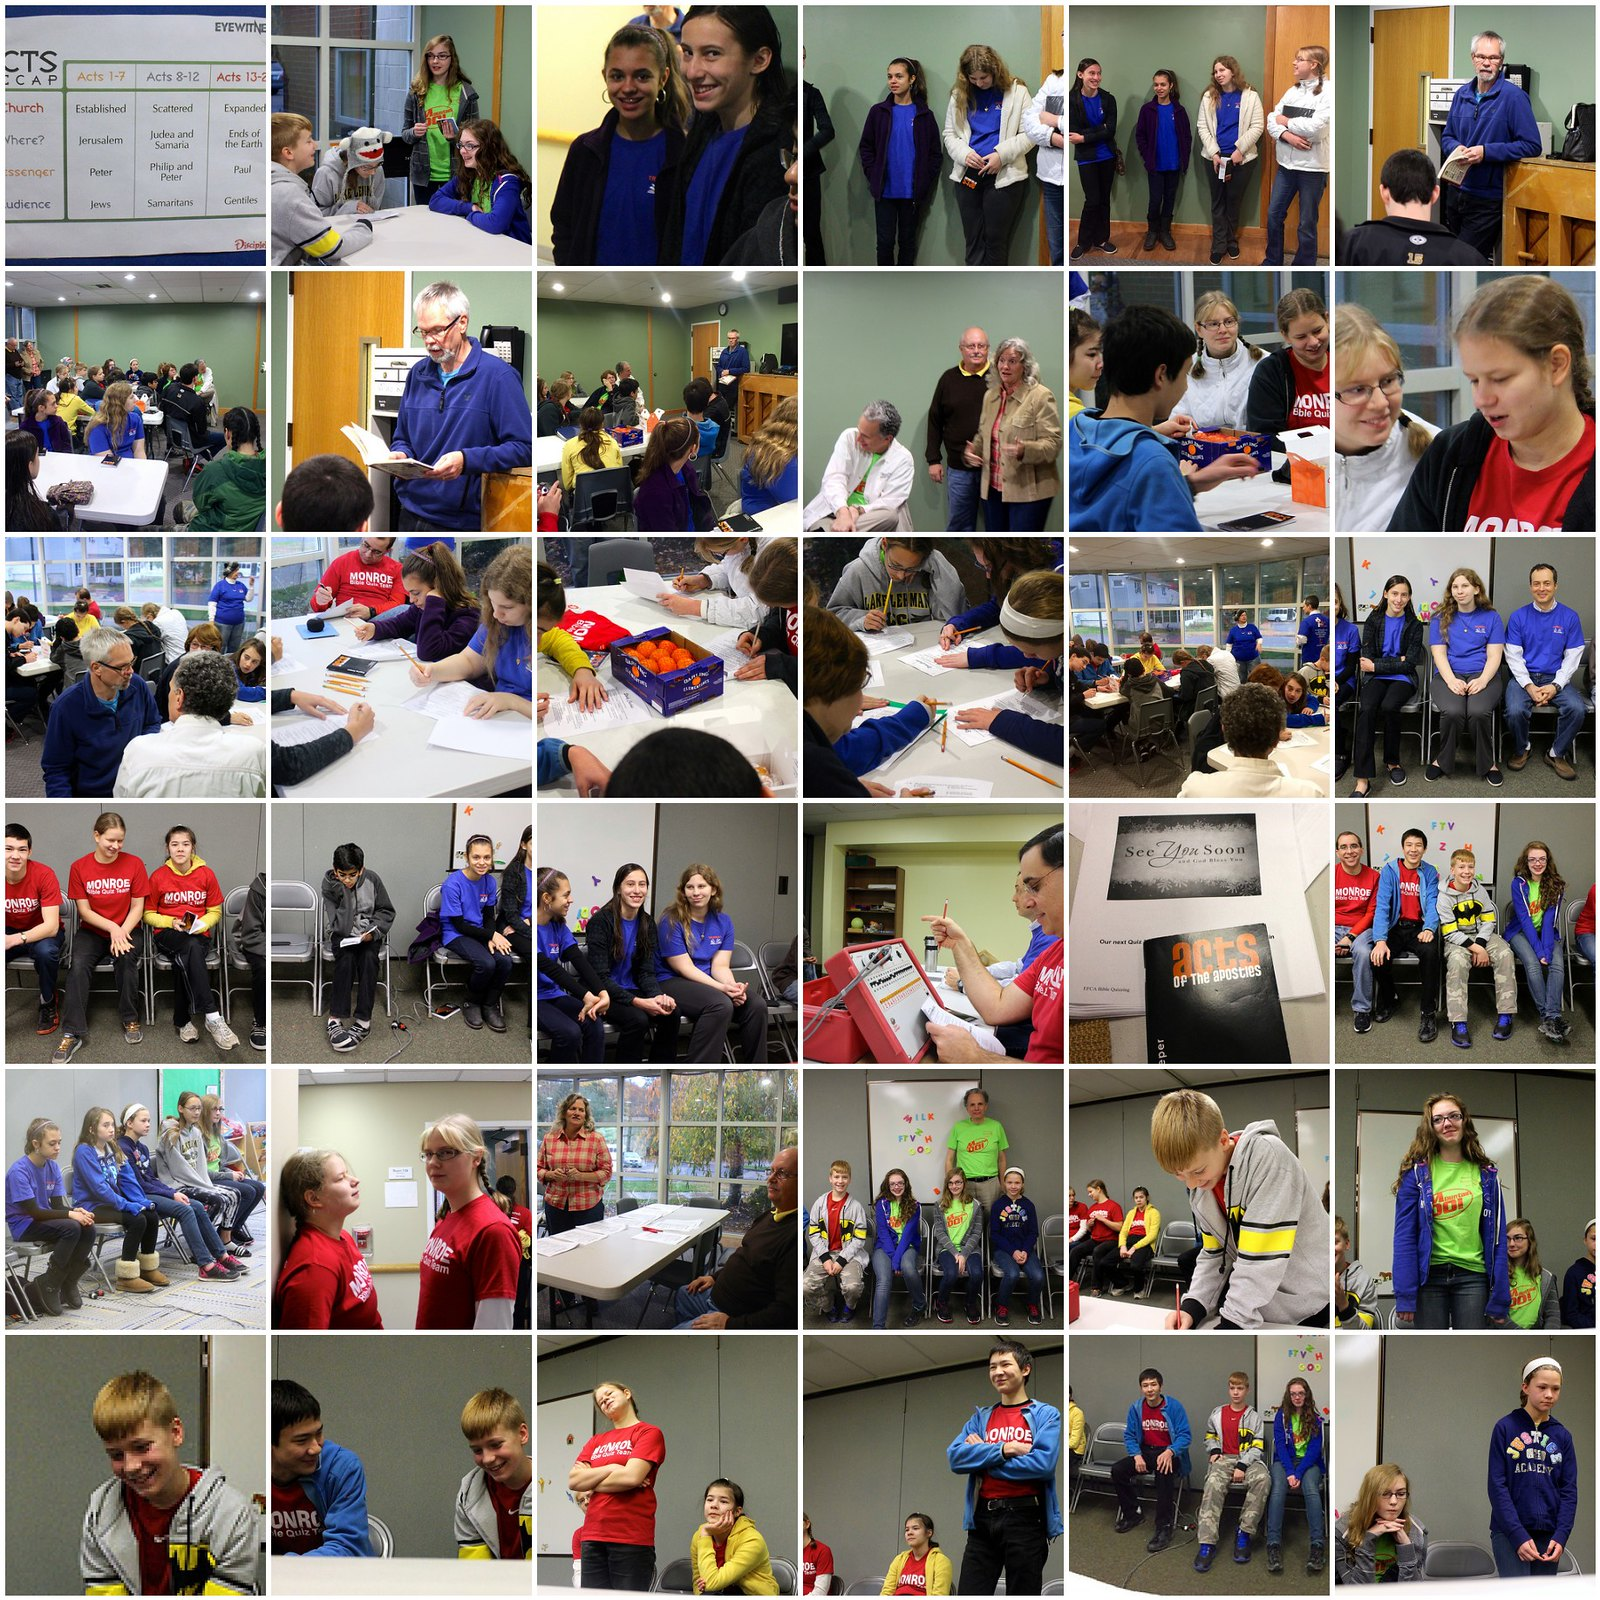 Mosaic of November 2014 Bible Quiz Meet in Trumbull, CT